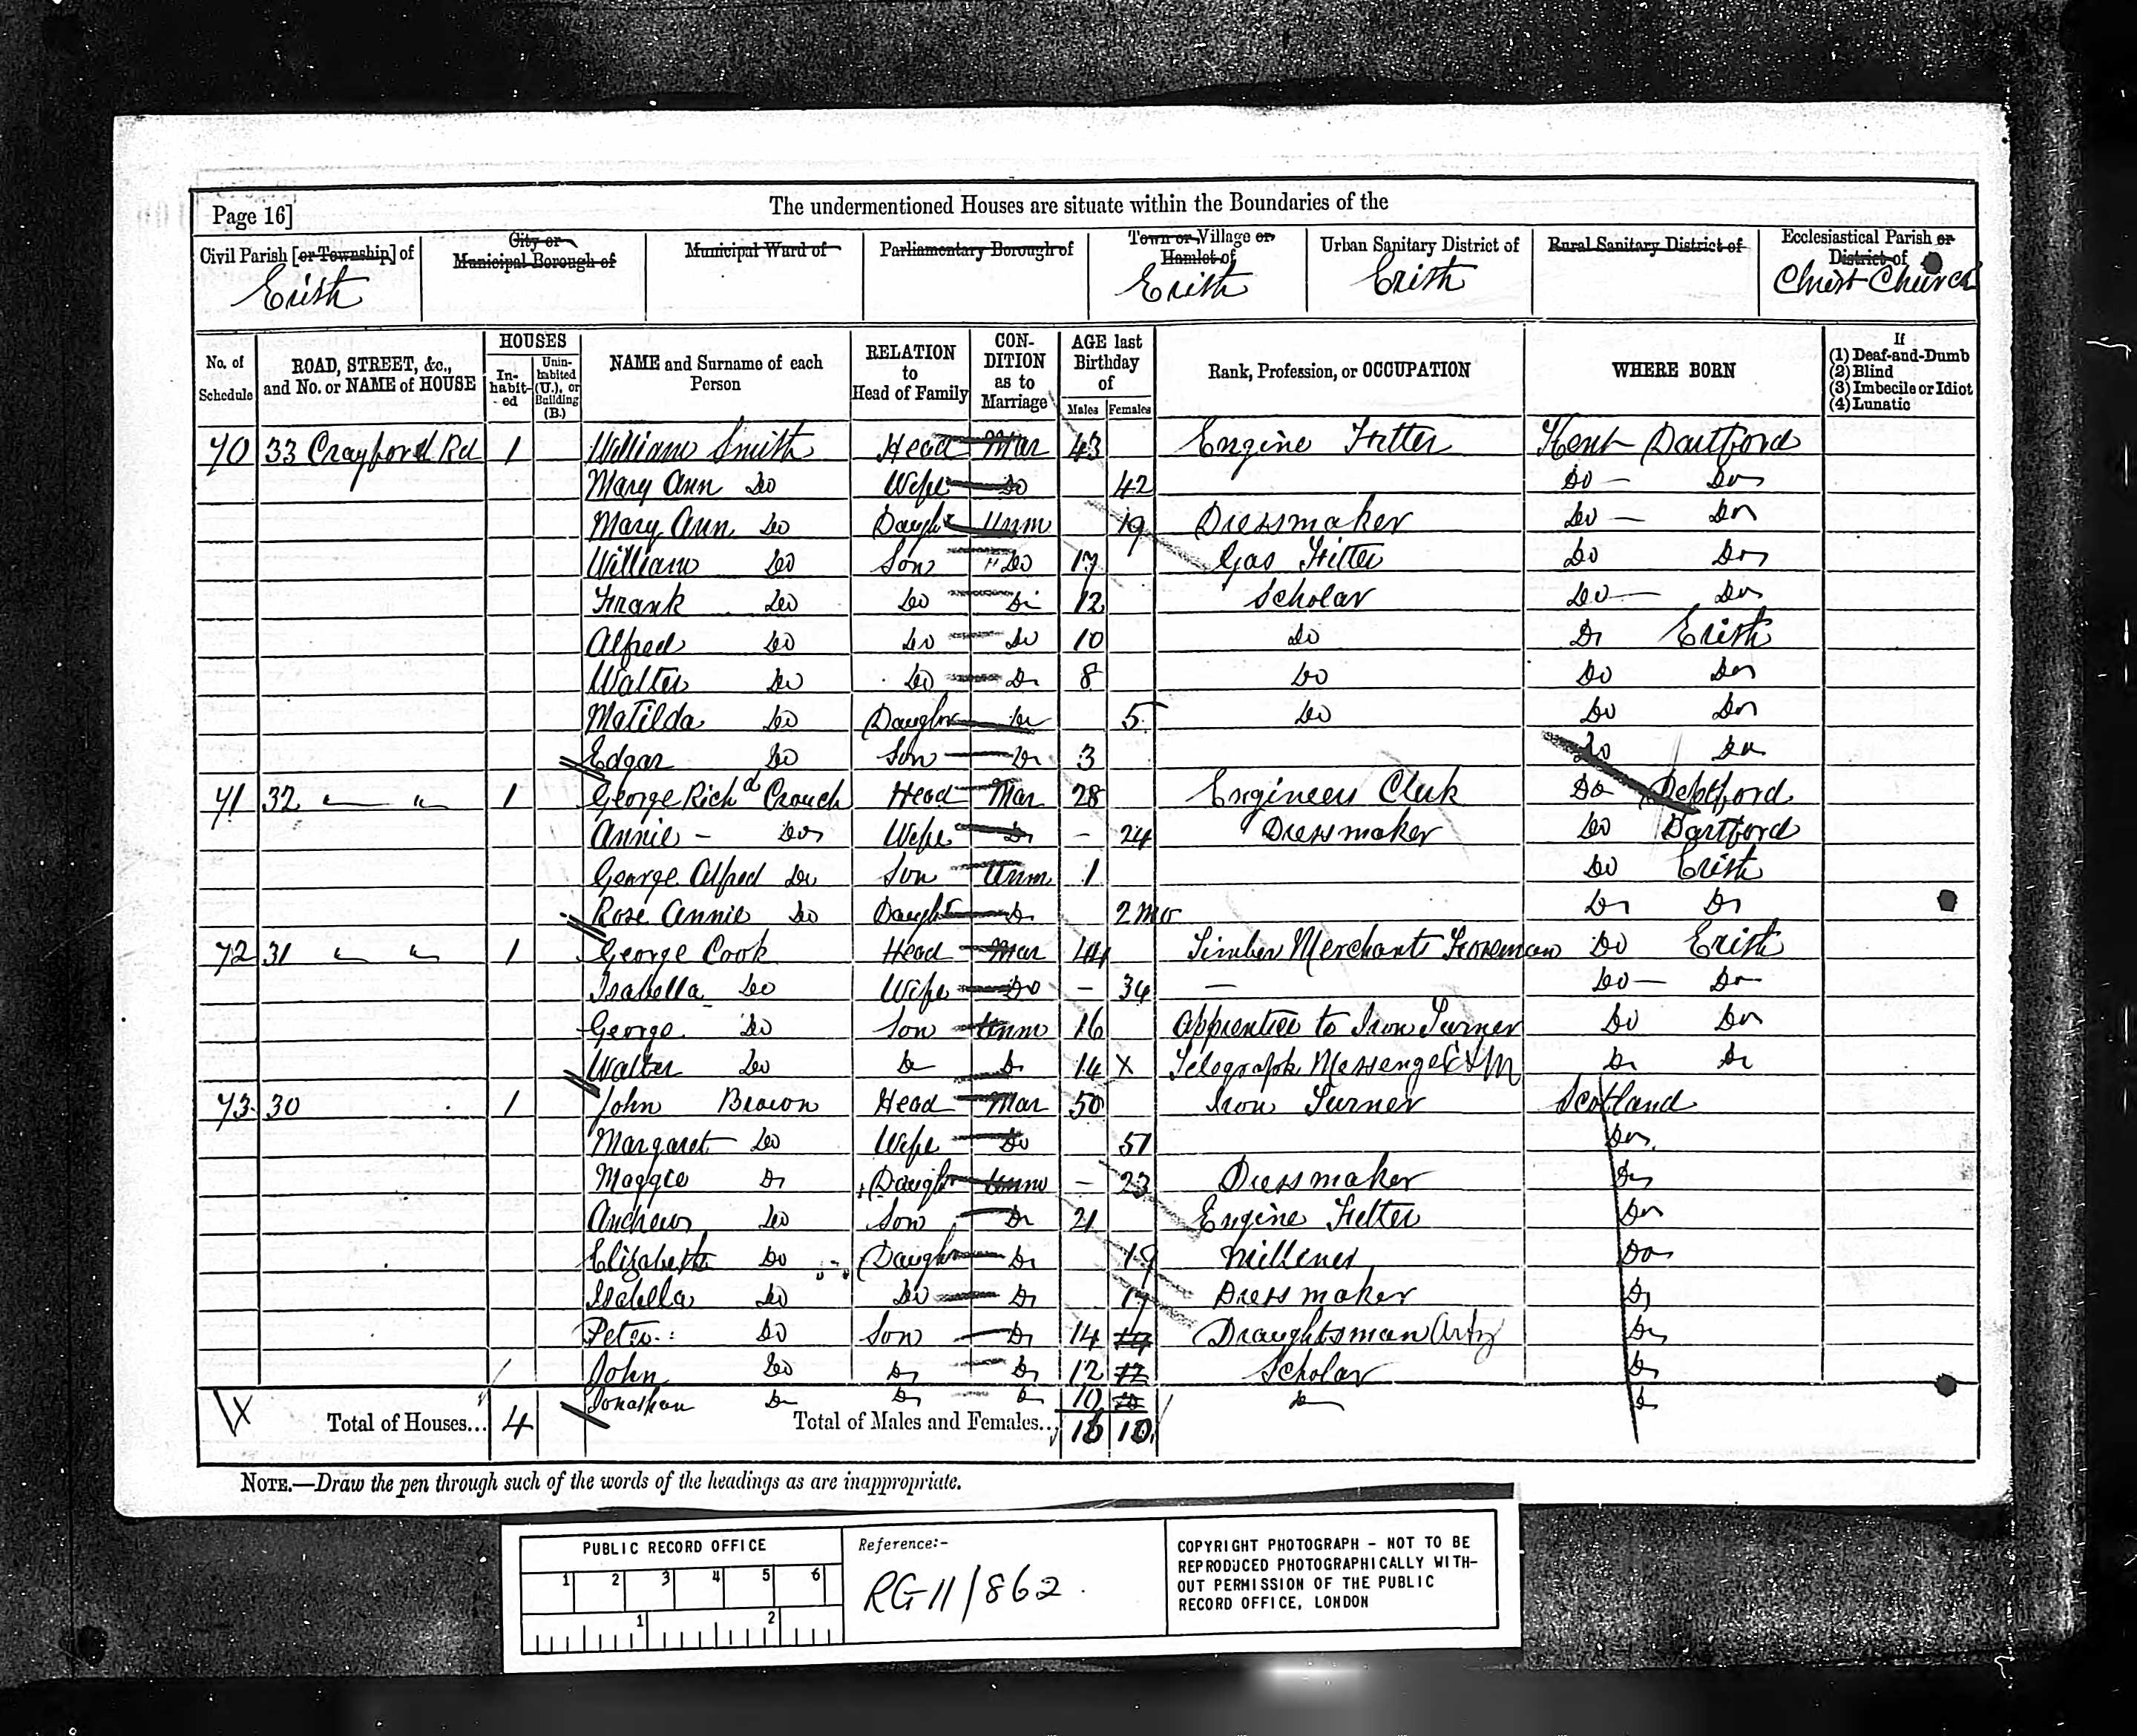 Mary ann goodhind records death certificate for mary ann goodhind smith xflitez Choice Image